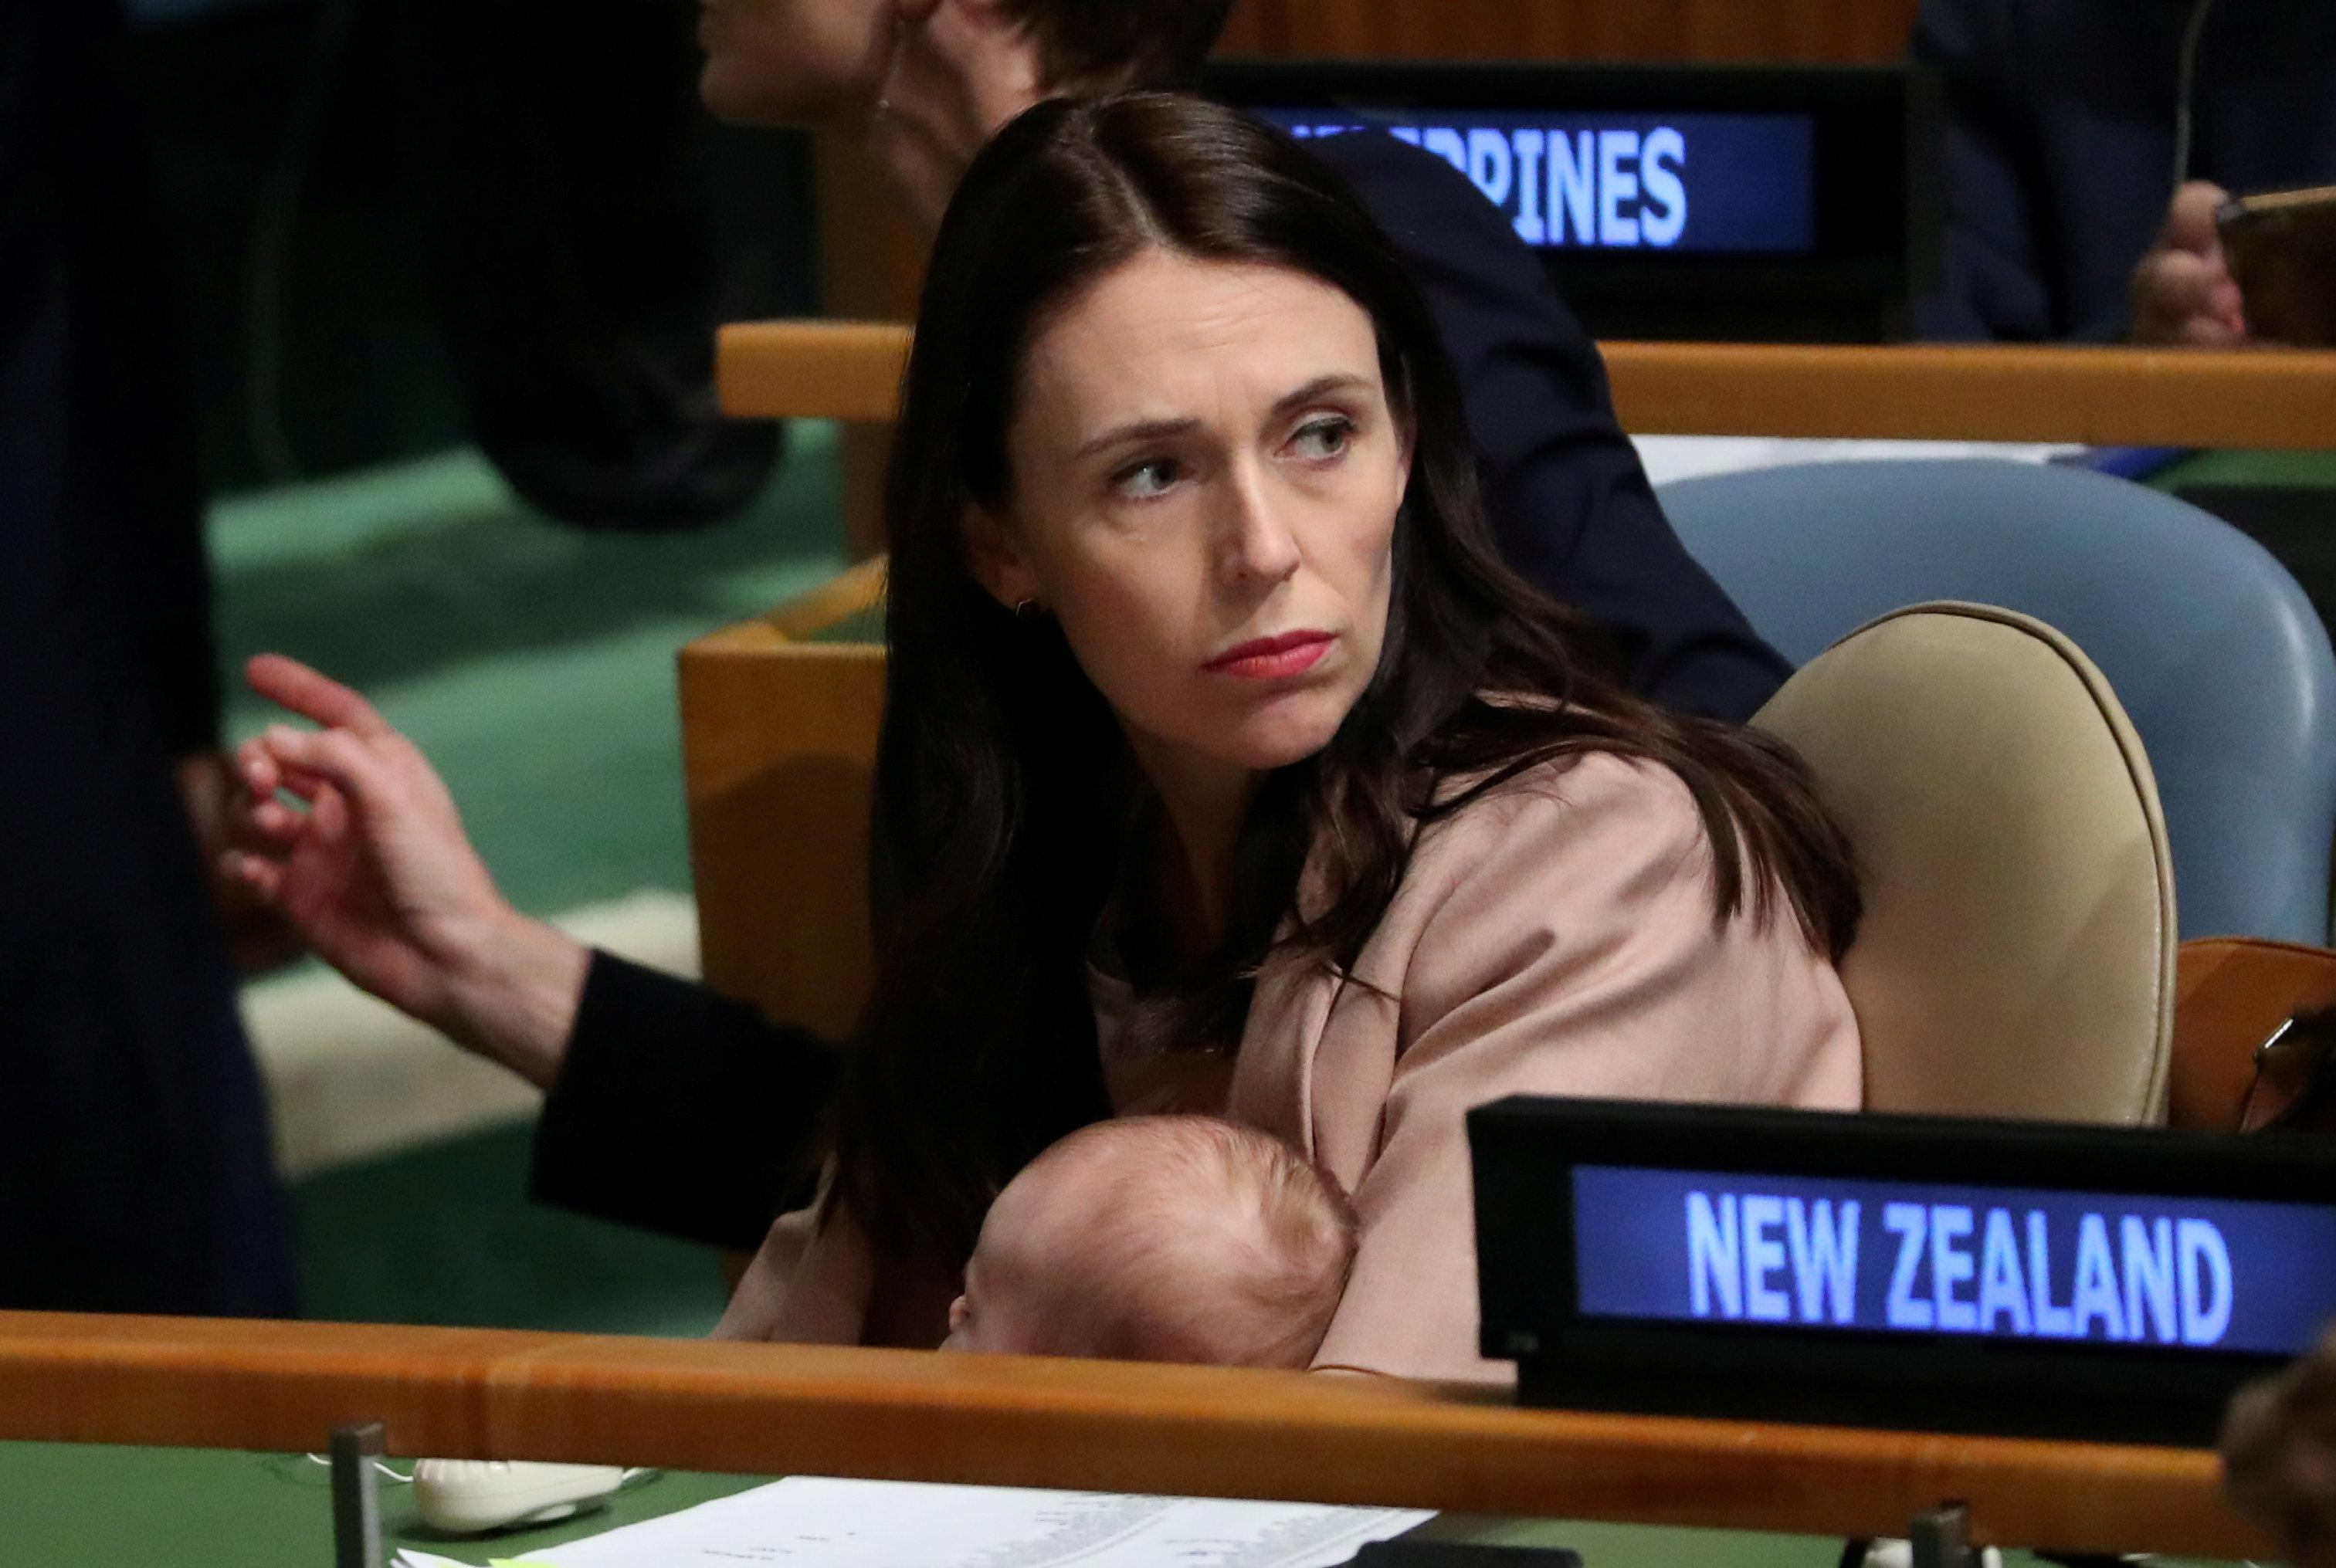 New Zealand Prime Minister Jacinda Ardern holds her baby Neve in the General Assembly Hall at the Nelson Mandela Peace Summit during the 73rd United Nations General Assembly in New York, U.S., September 24, 2018. Carlo Allegri